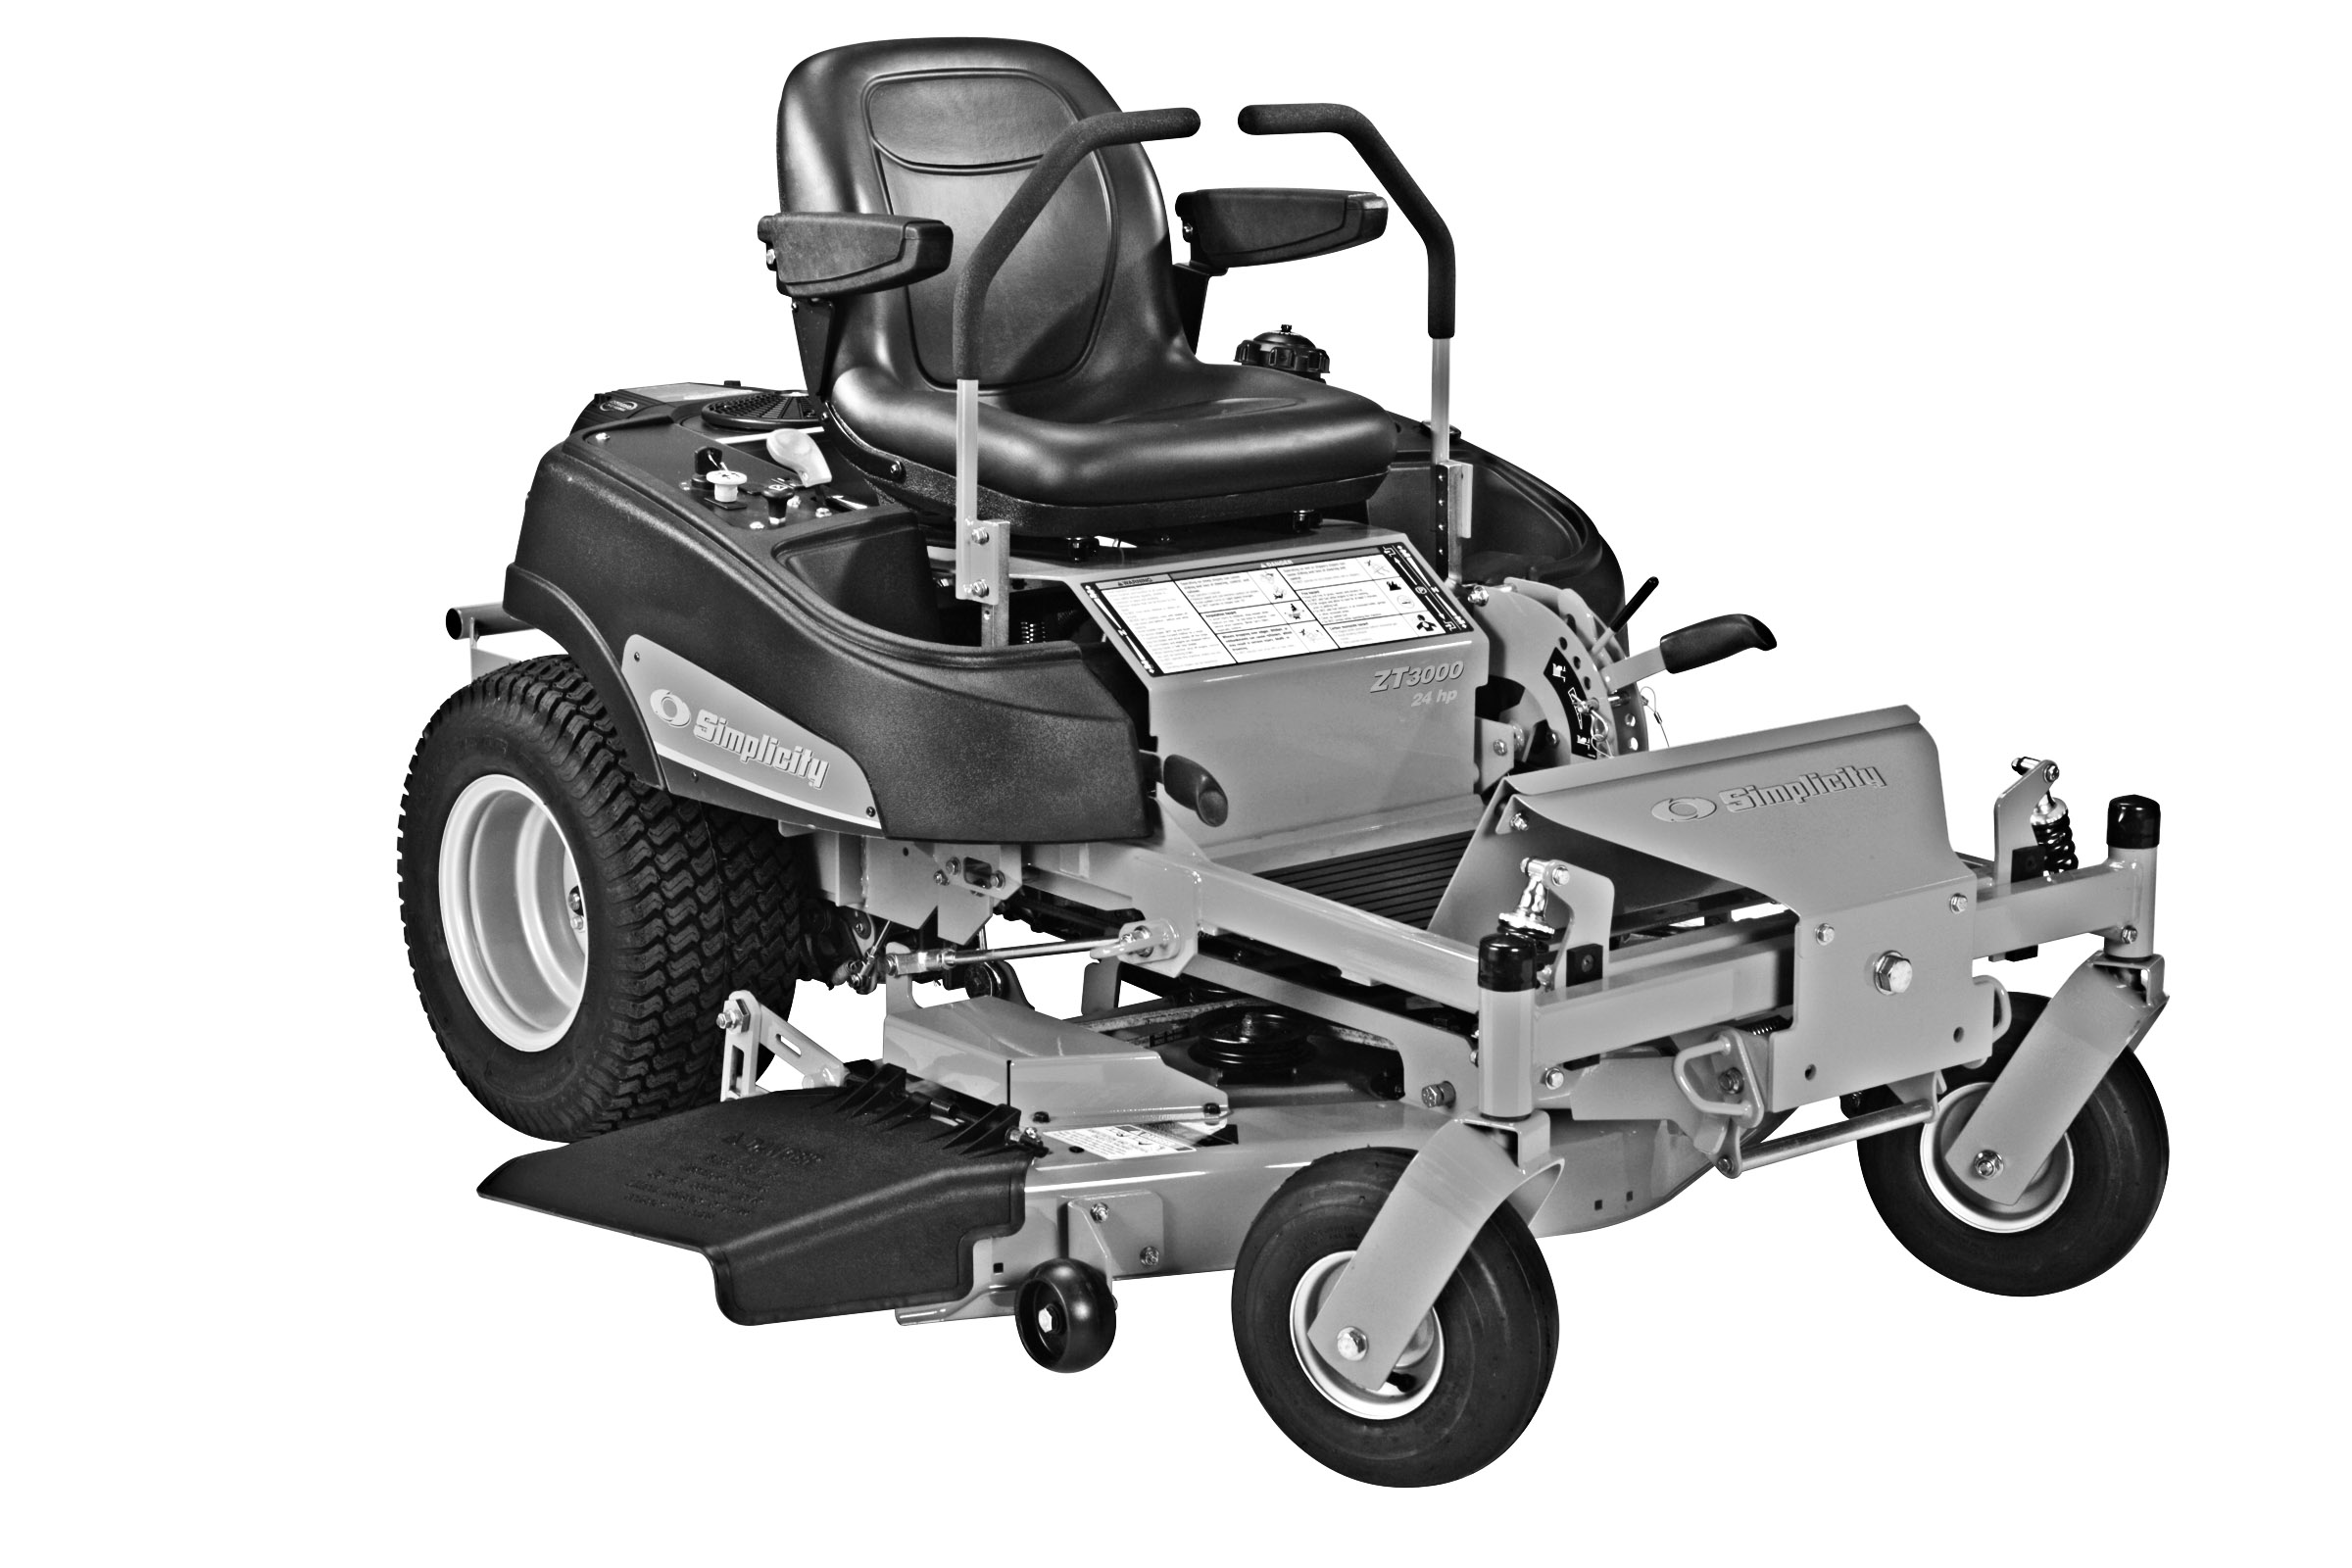 Jolly exmark quests series. Lawn mower clipart lawn equipment graphic transparent